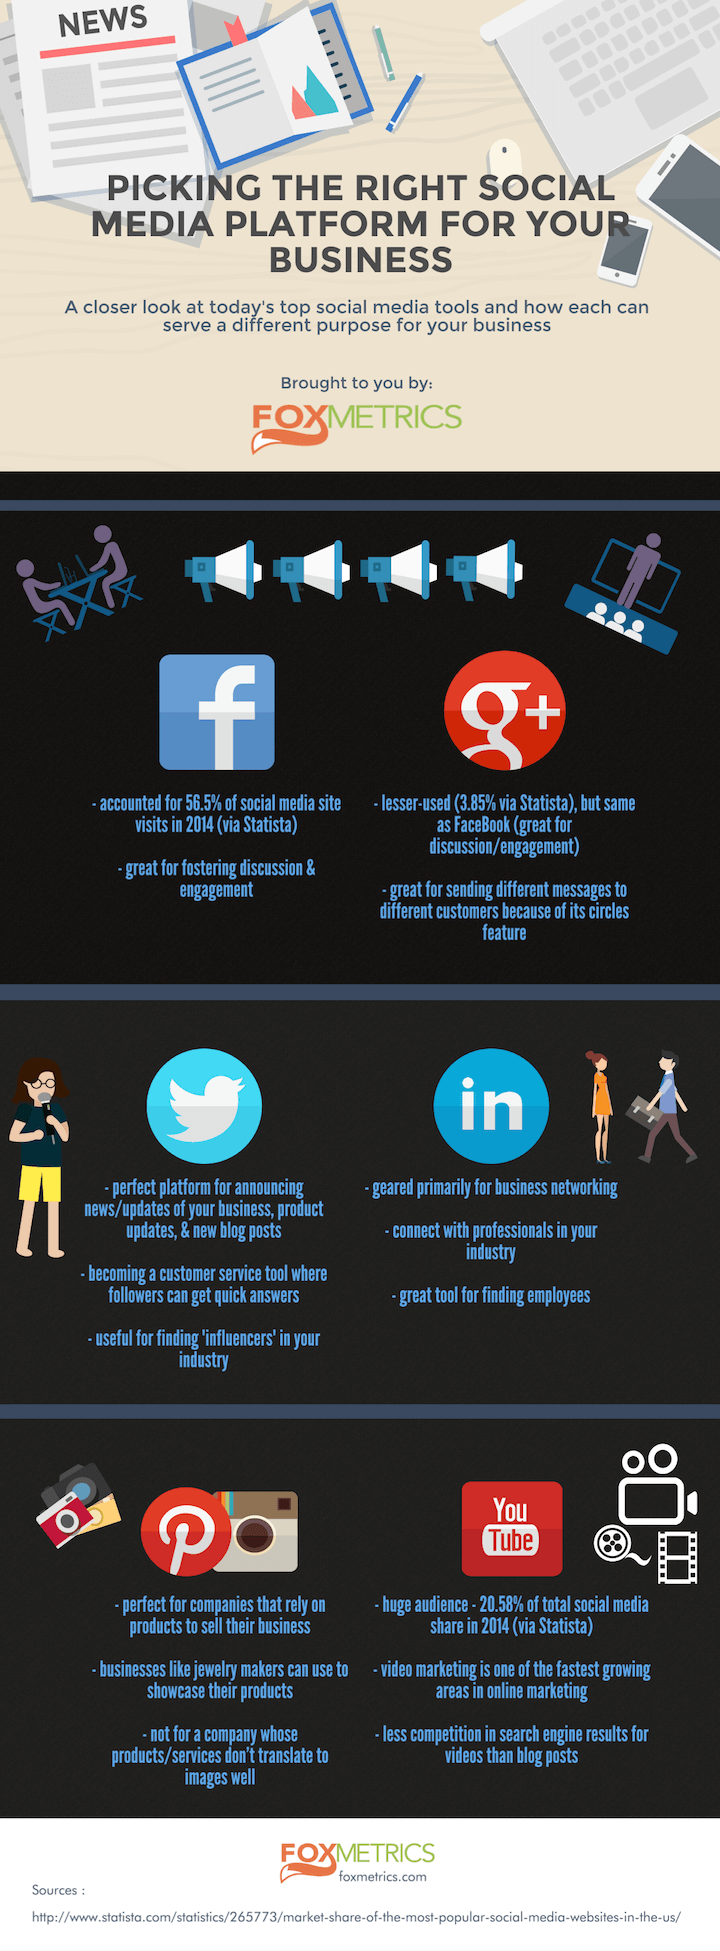 Effective Use of Social Media for Digital Marketing